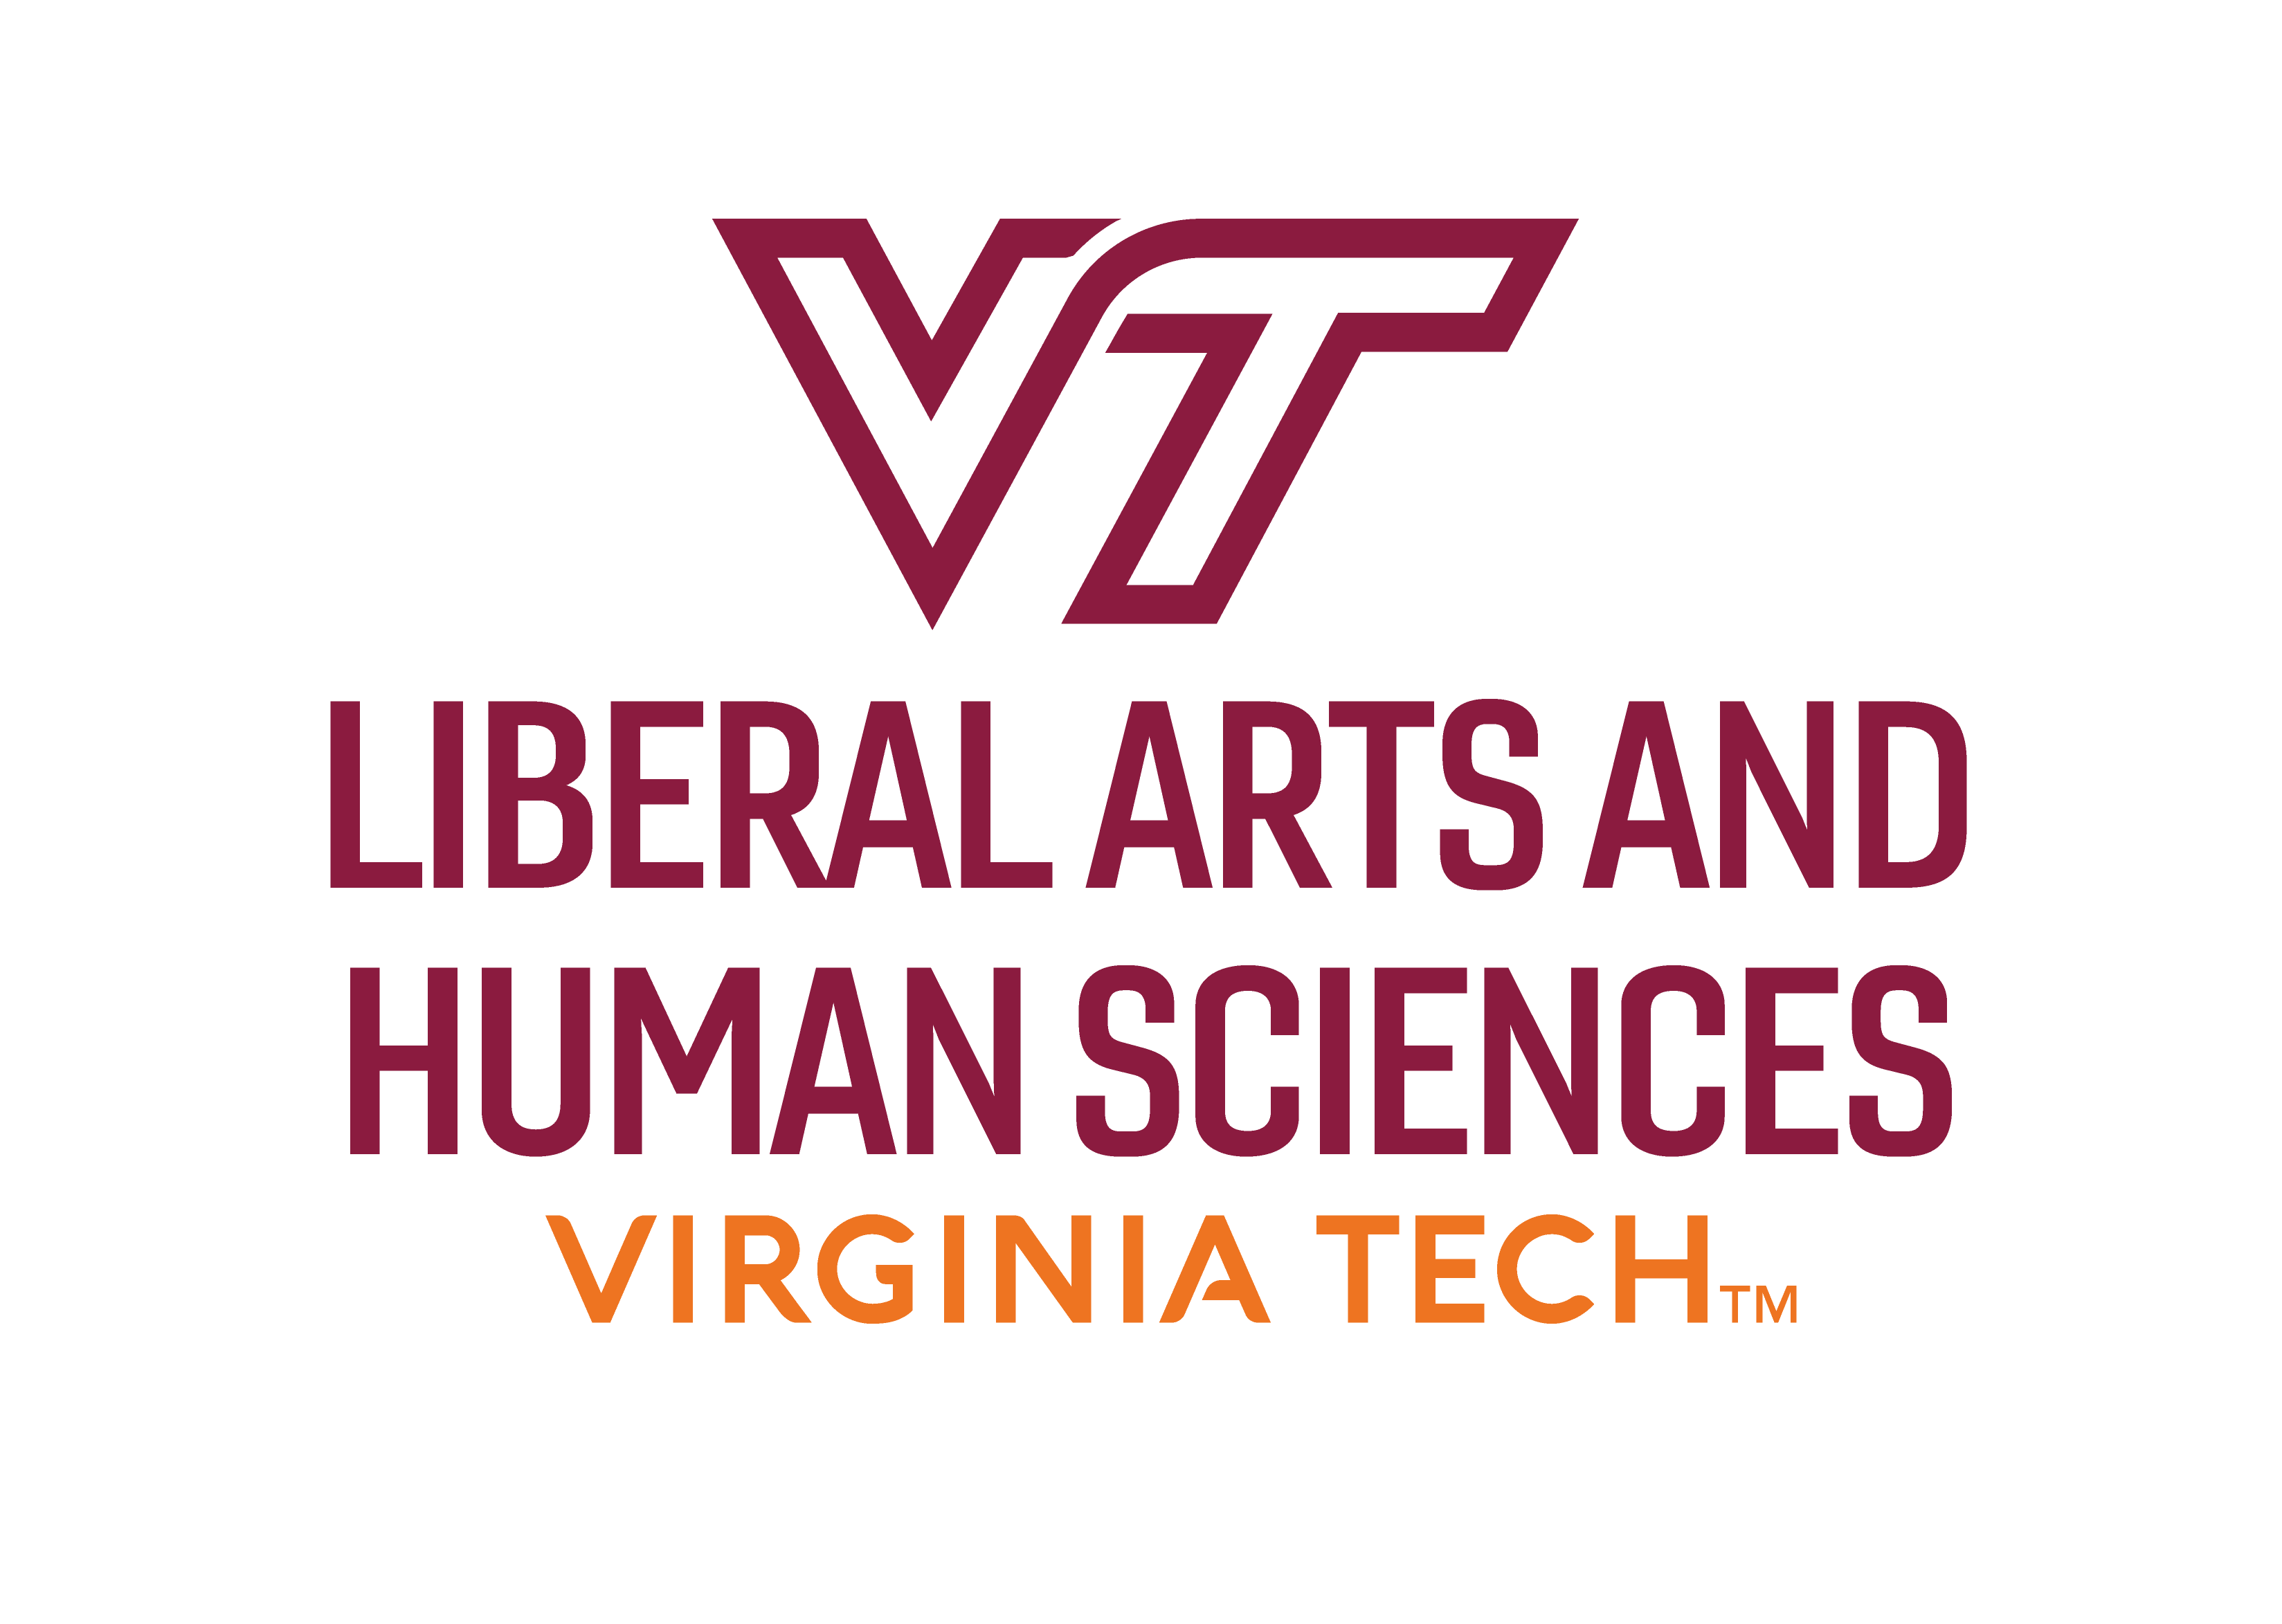 Virginia Tech College of Liberal Arts and Human Sciences logo